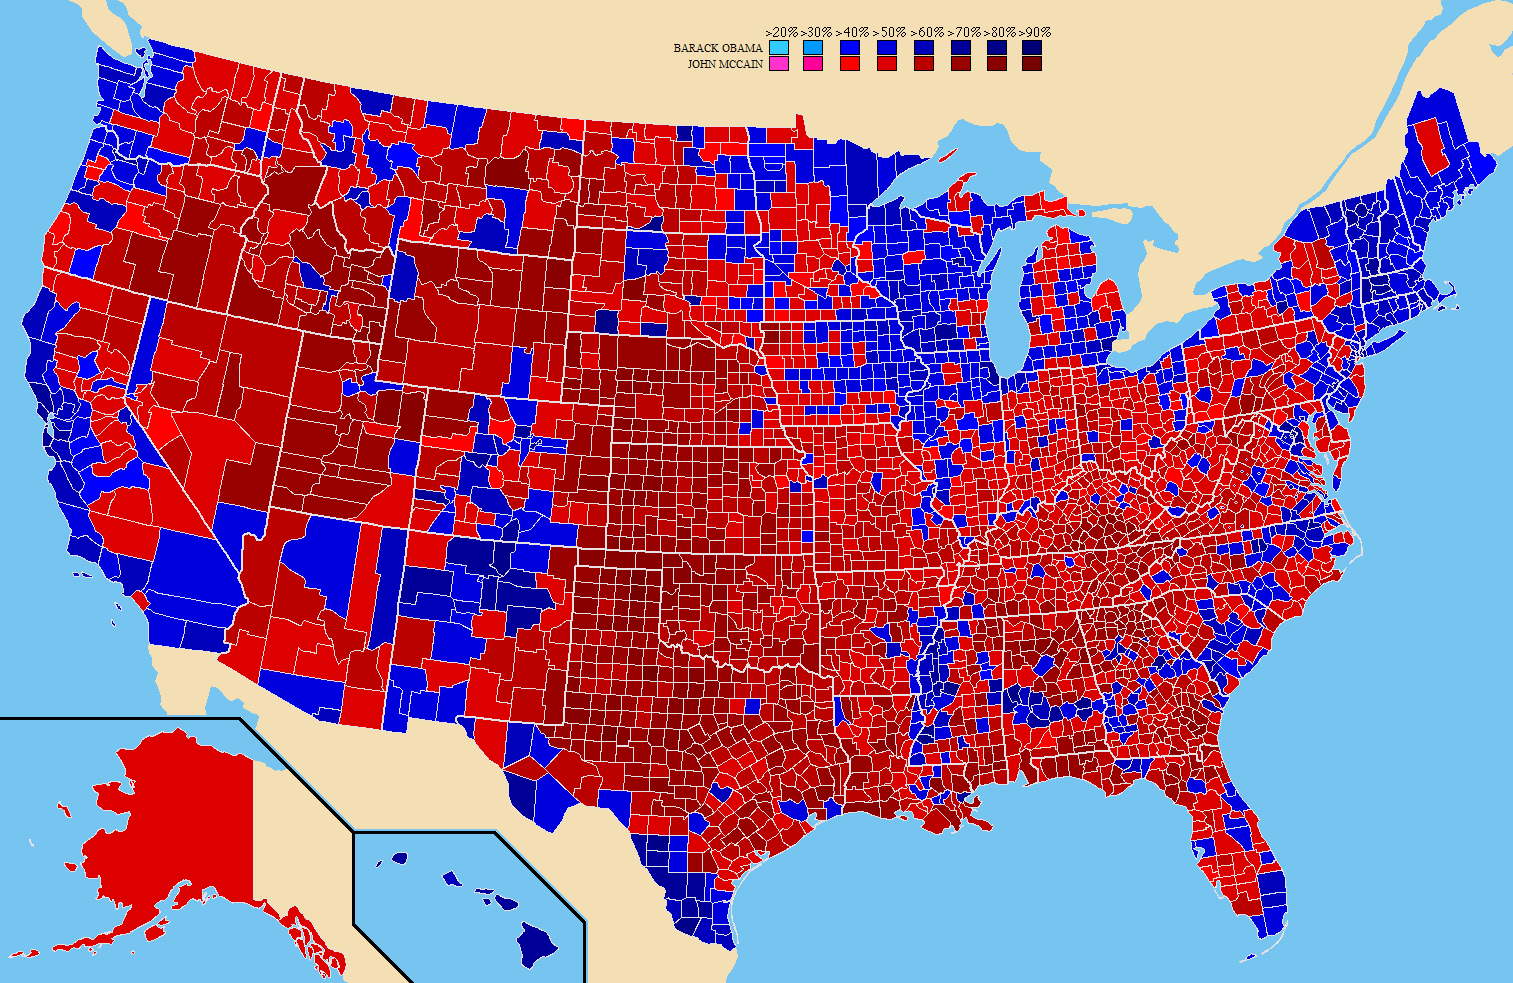 http://en.wikipedia.org/wiki/United_States_presidential_election,_2008